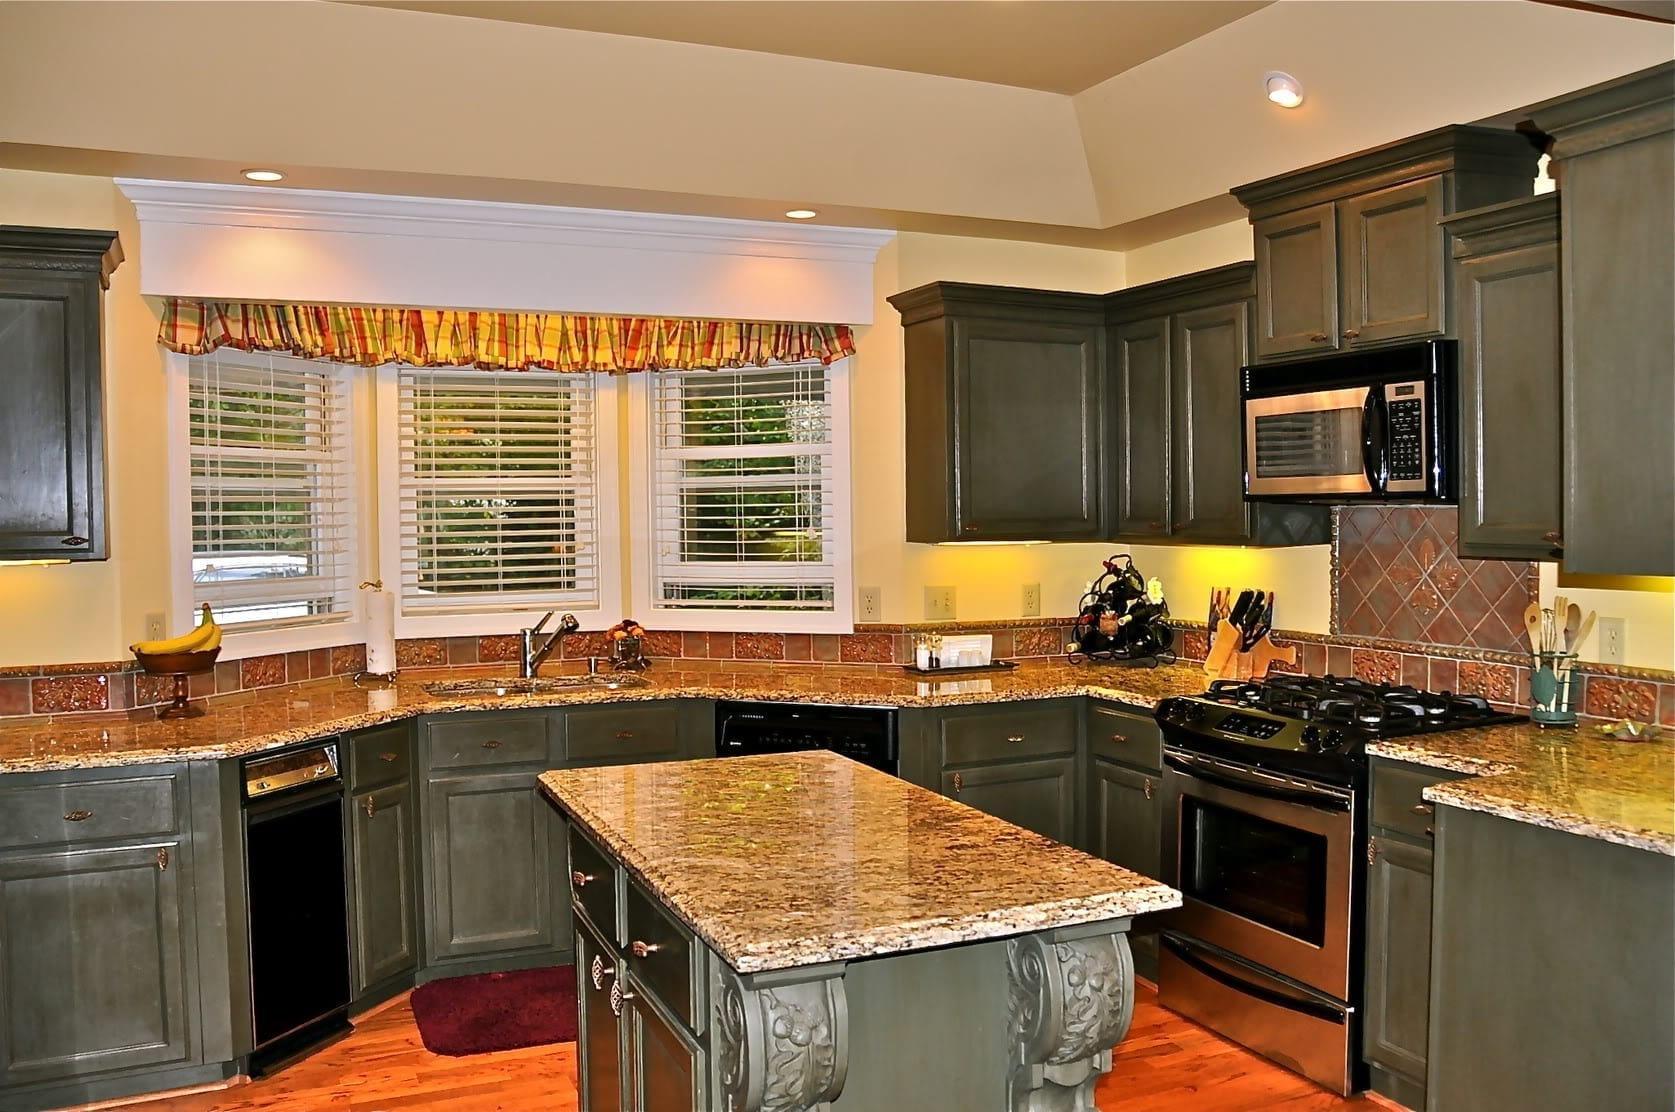 kitchen remodel remodel kitchen kitchen remodel 10 Sell or Remodel Get The Most For The Dollar